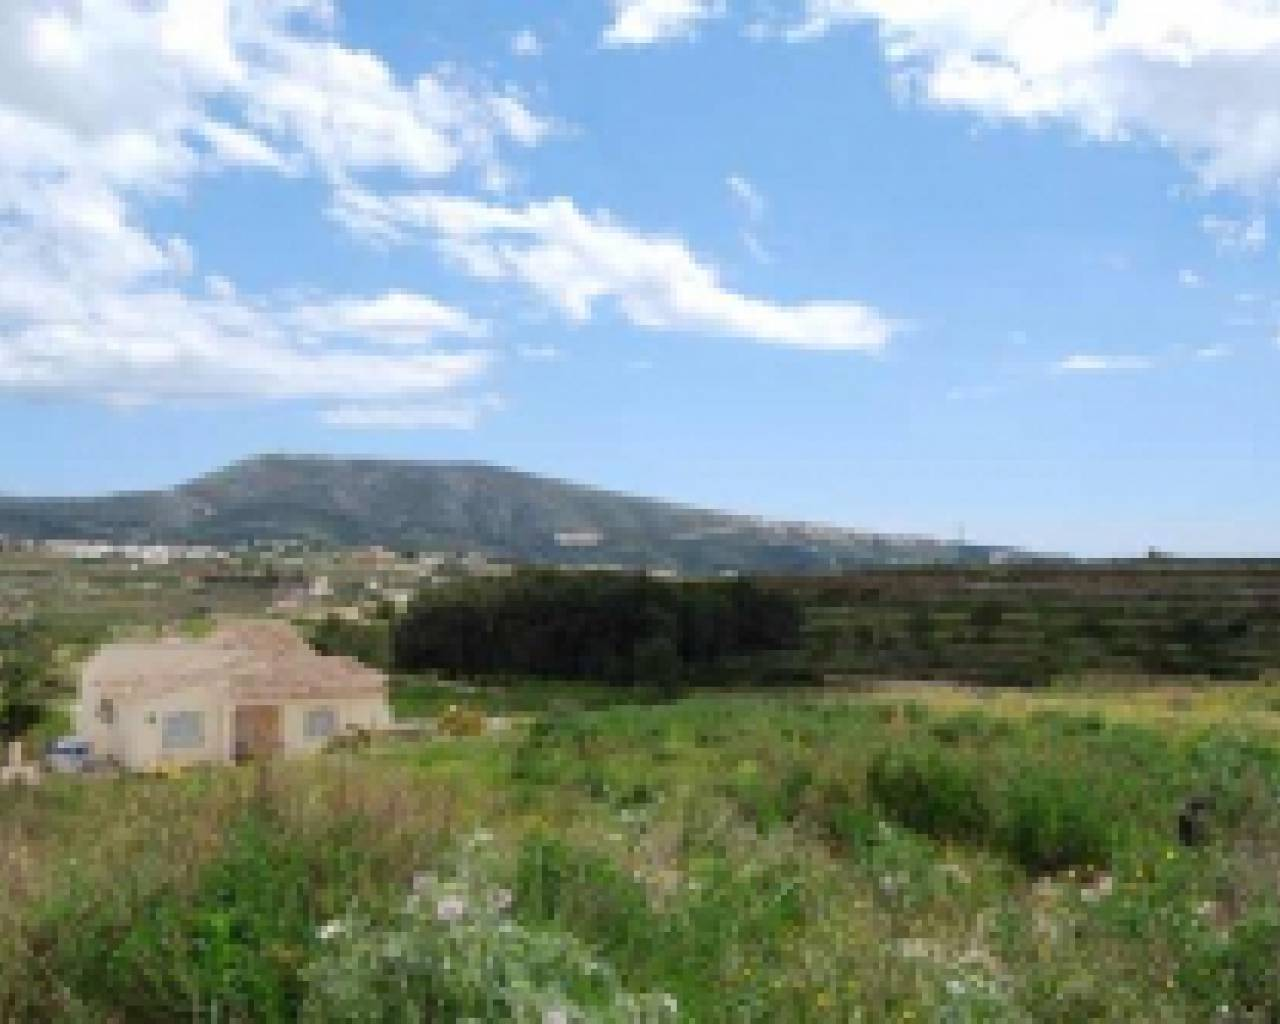 Sale - Plot of Land - Benitachell - Los Molinos